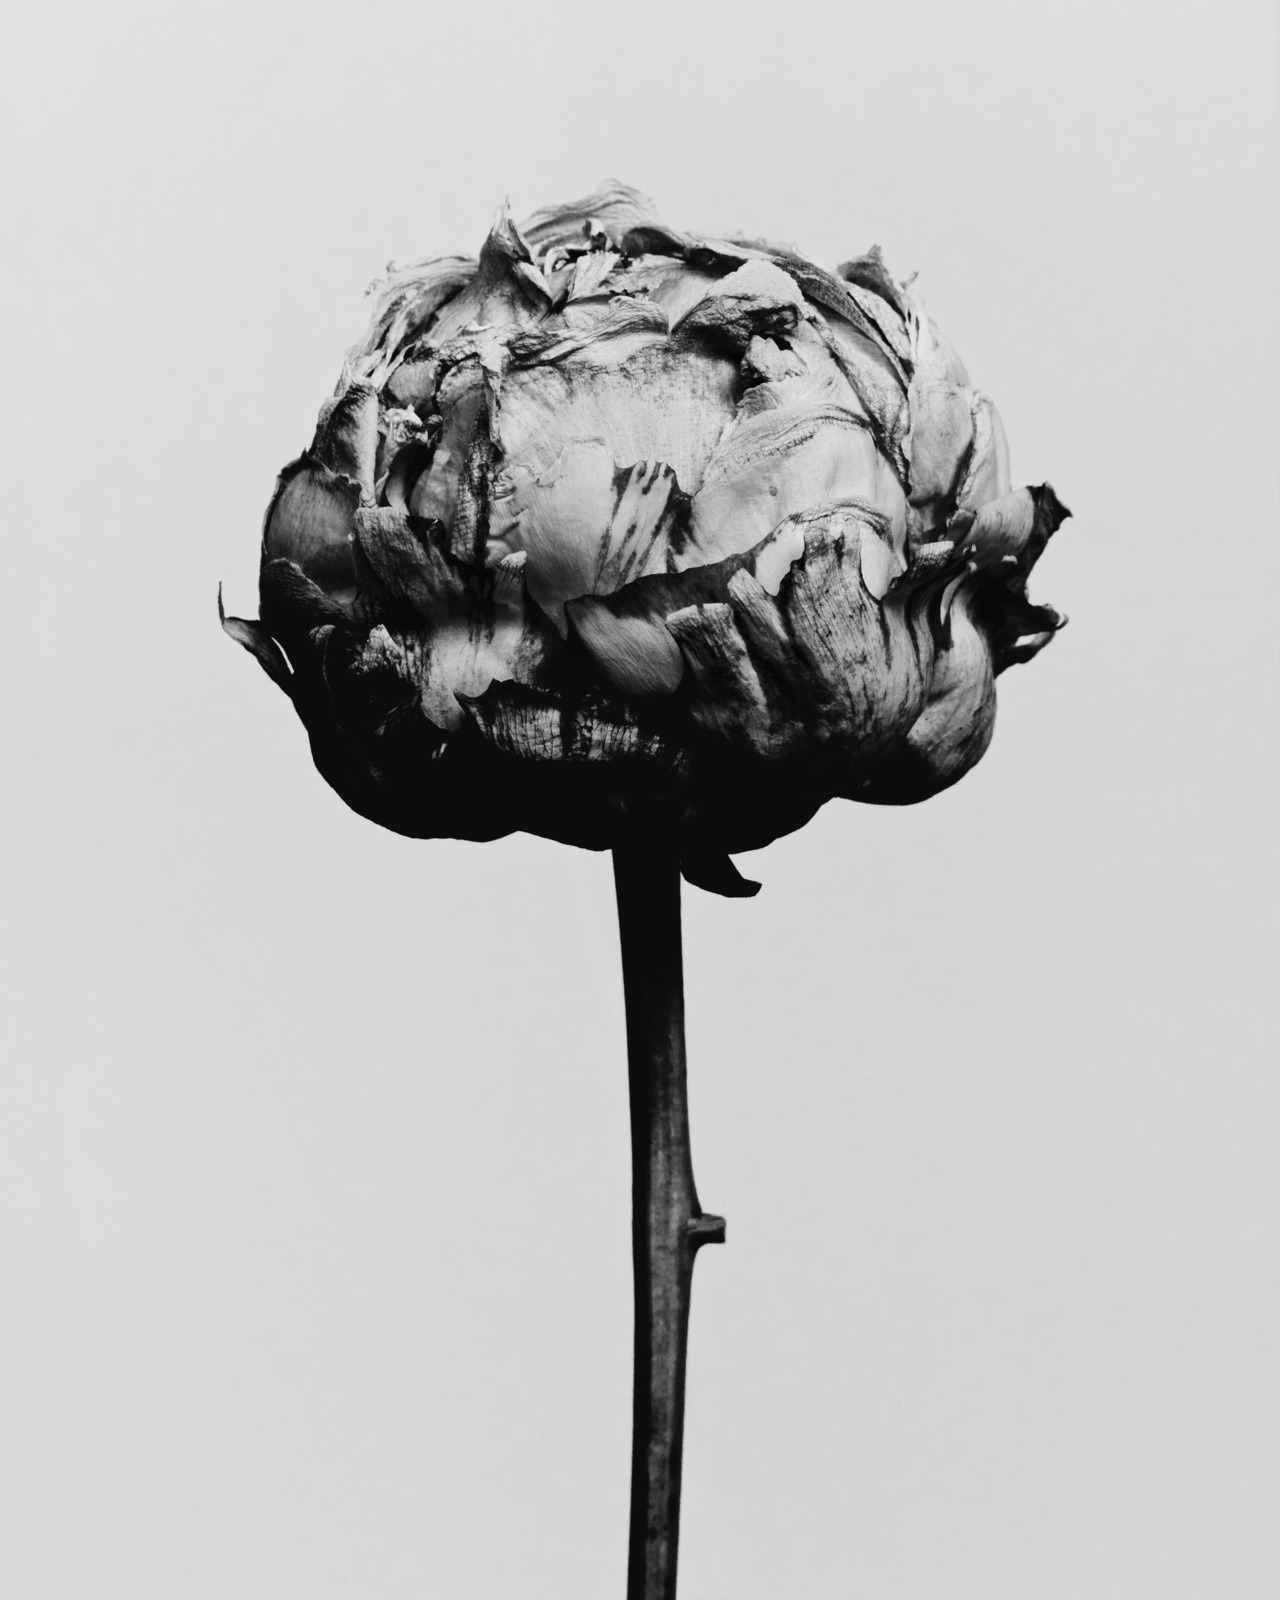 Decaying flower was shot by Billy Kidd. (via billykidd)